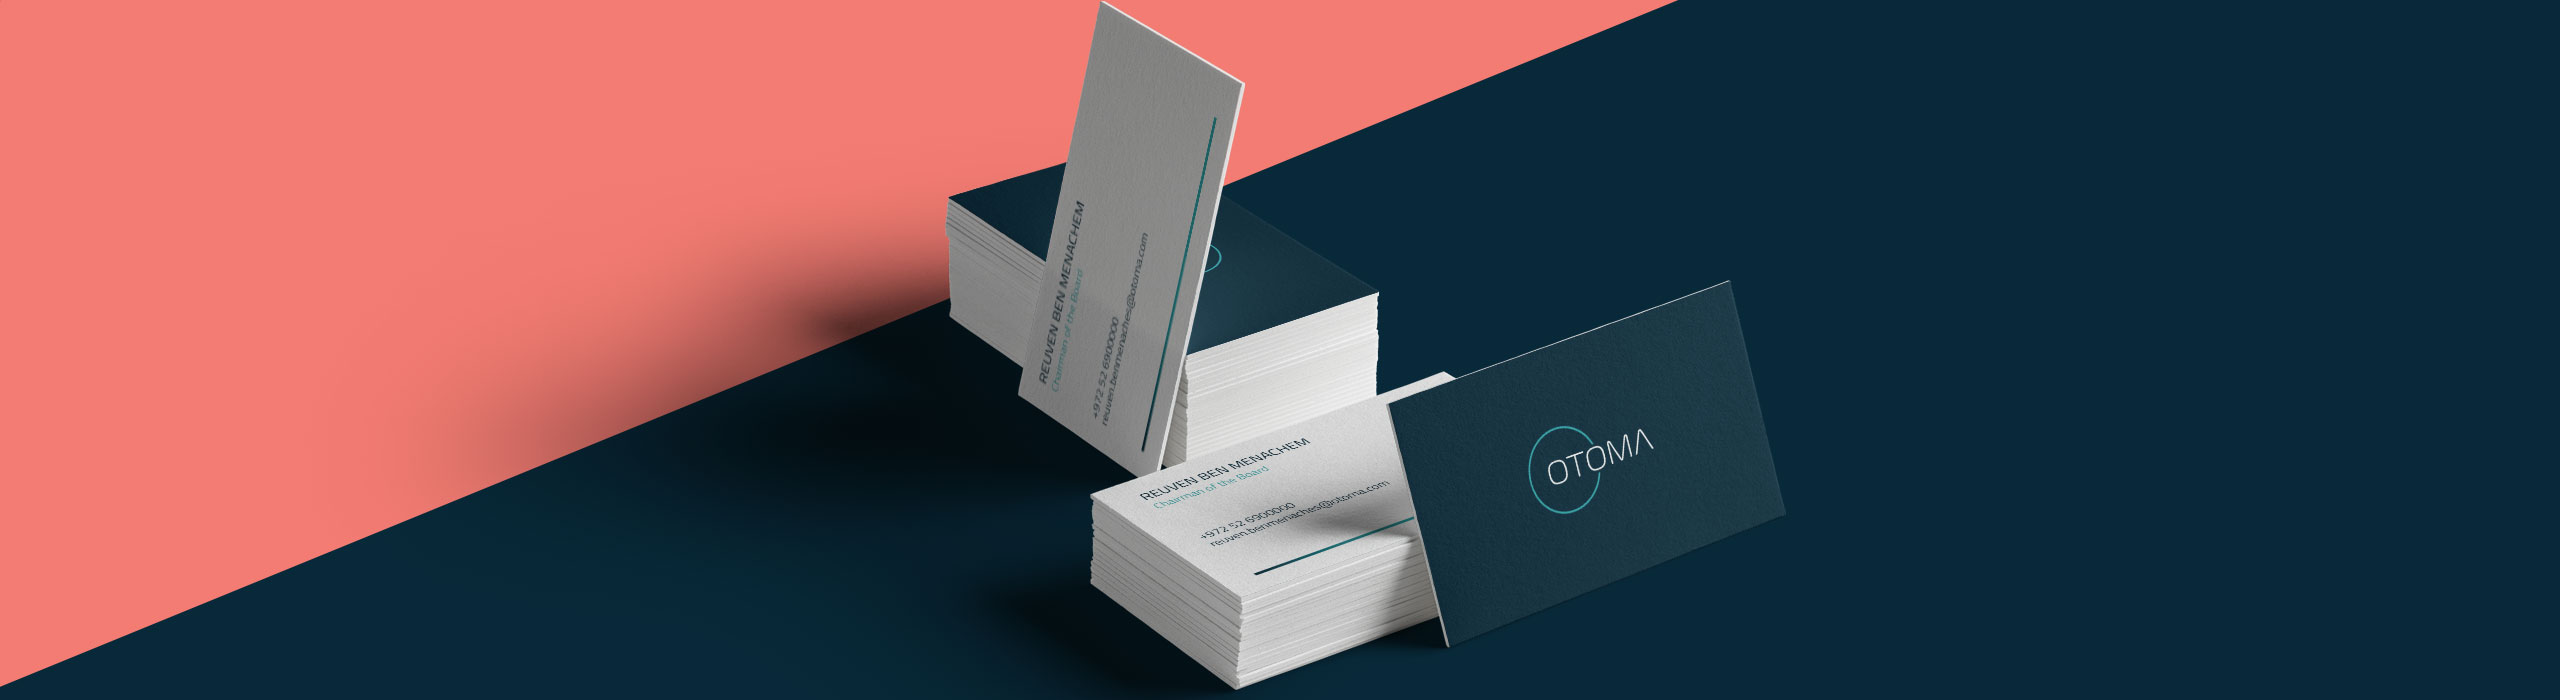 Otoma - 6 - Natie Branding Agency